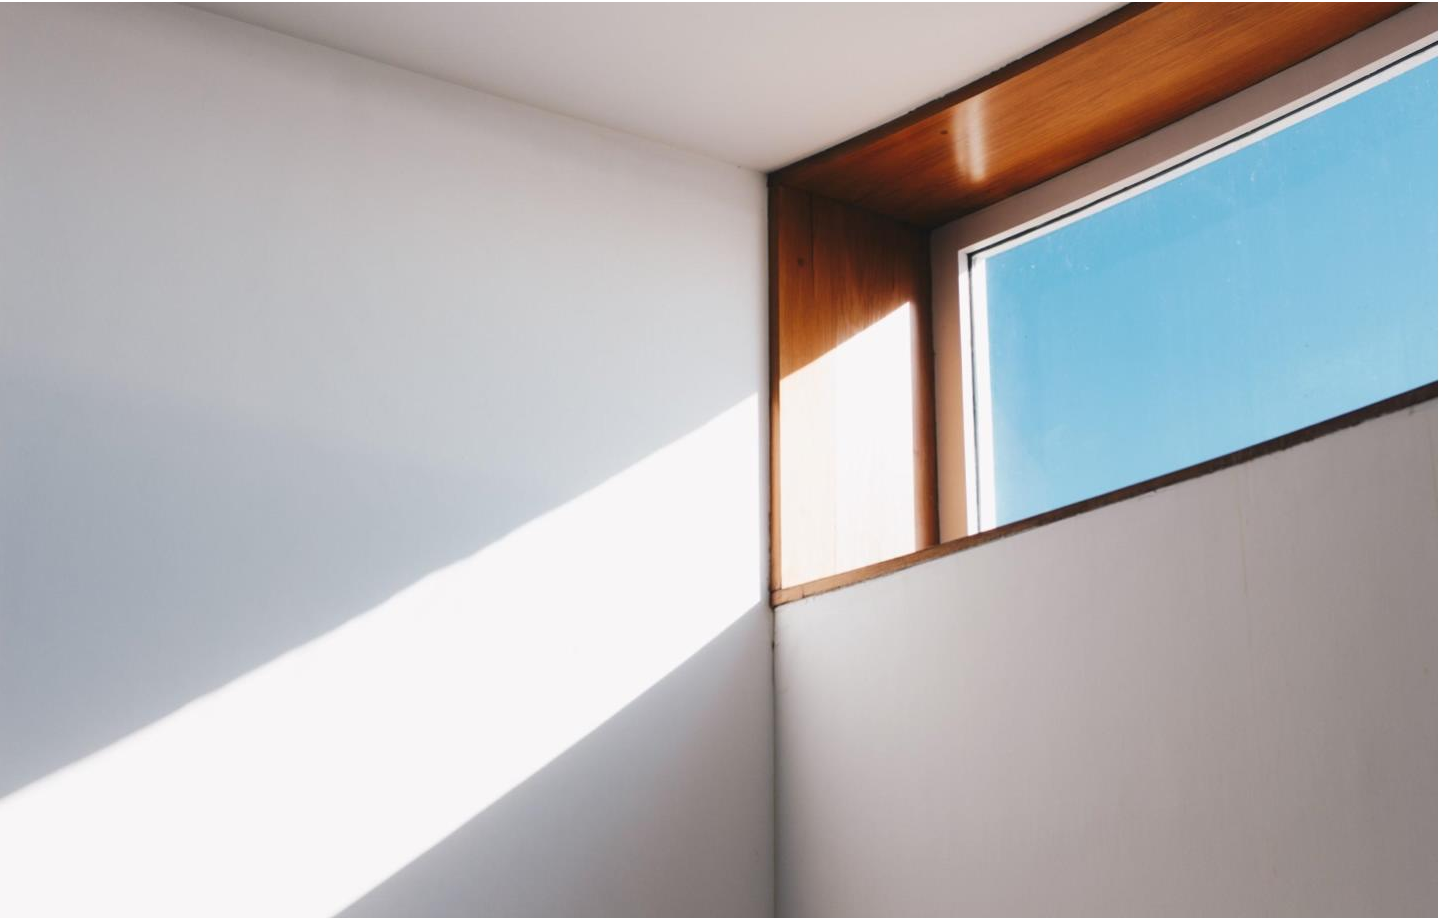 Picture of Blue sky and light coming through window